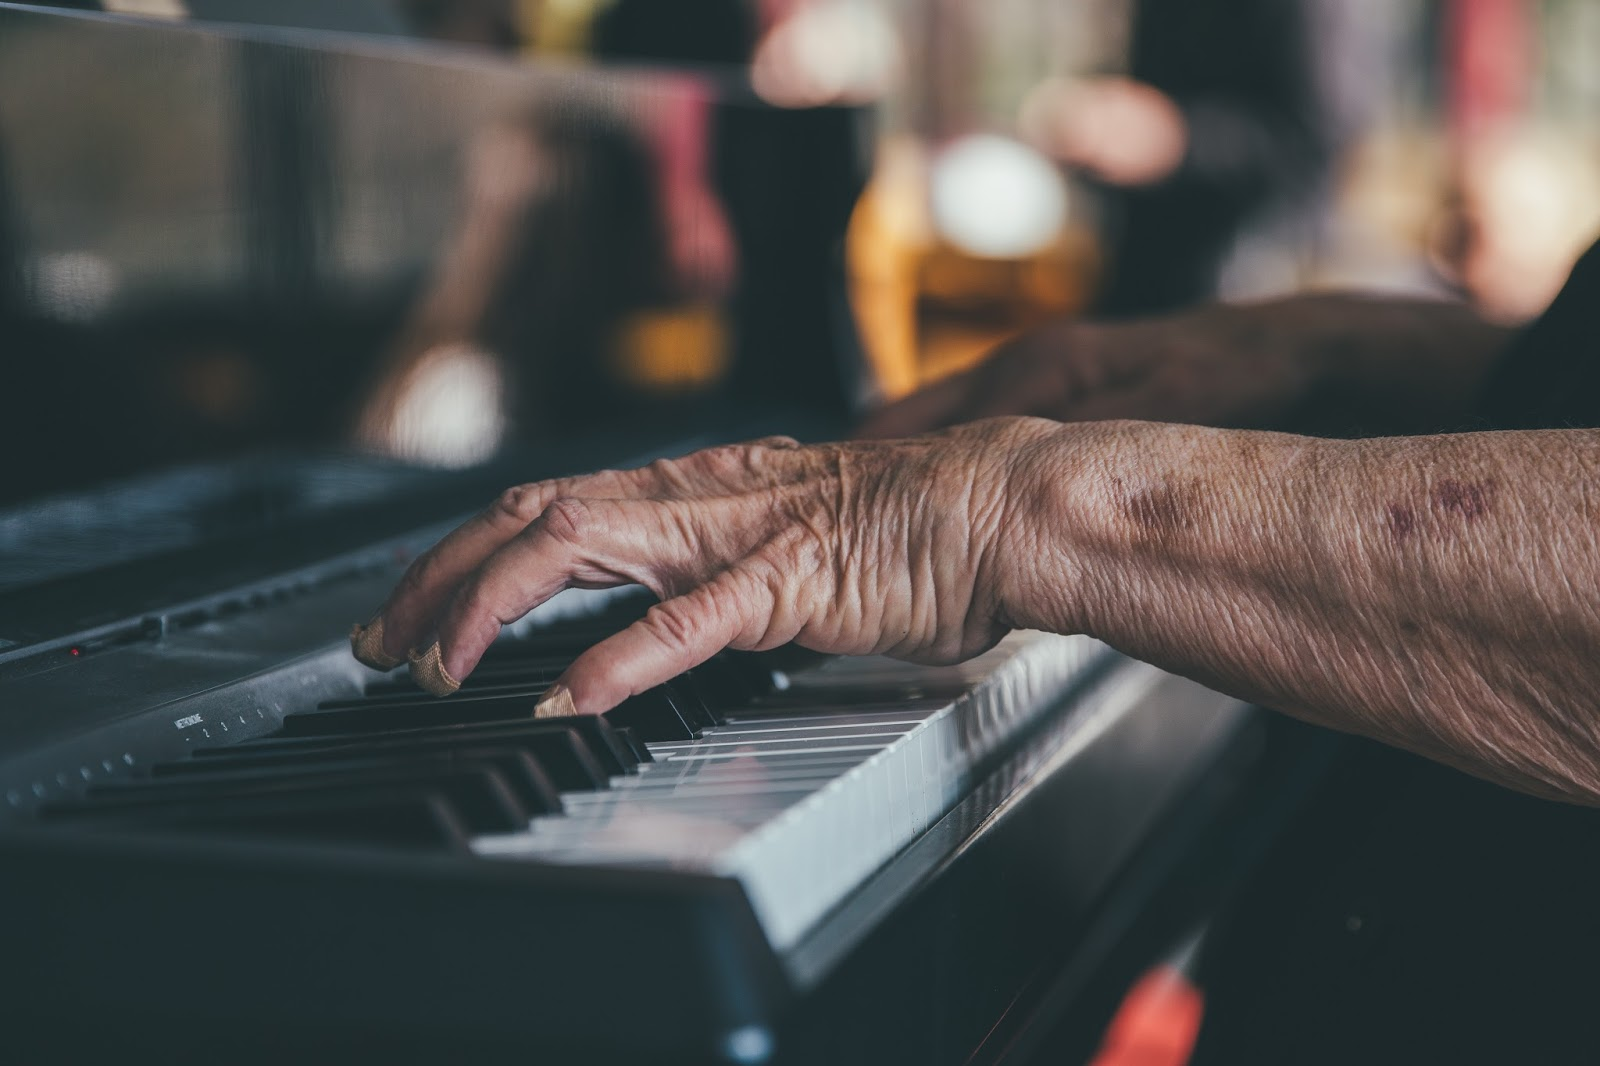 Hands of an old lady playing the piano